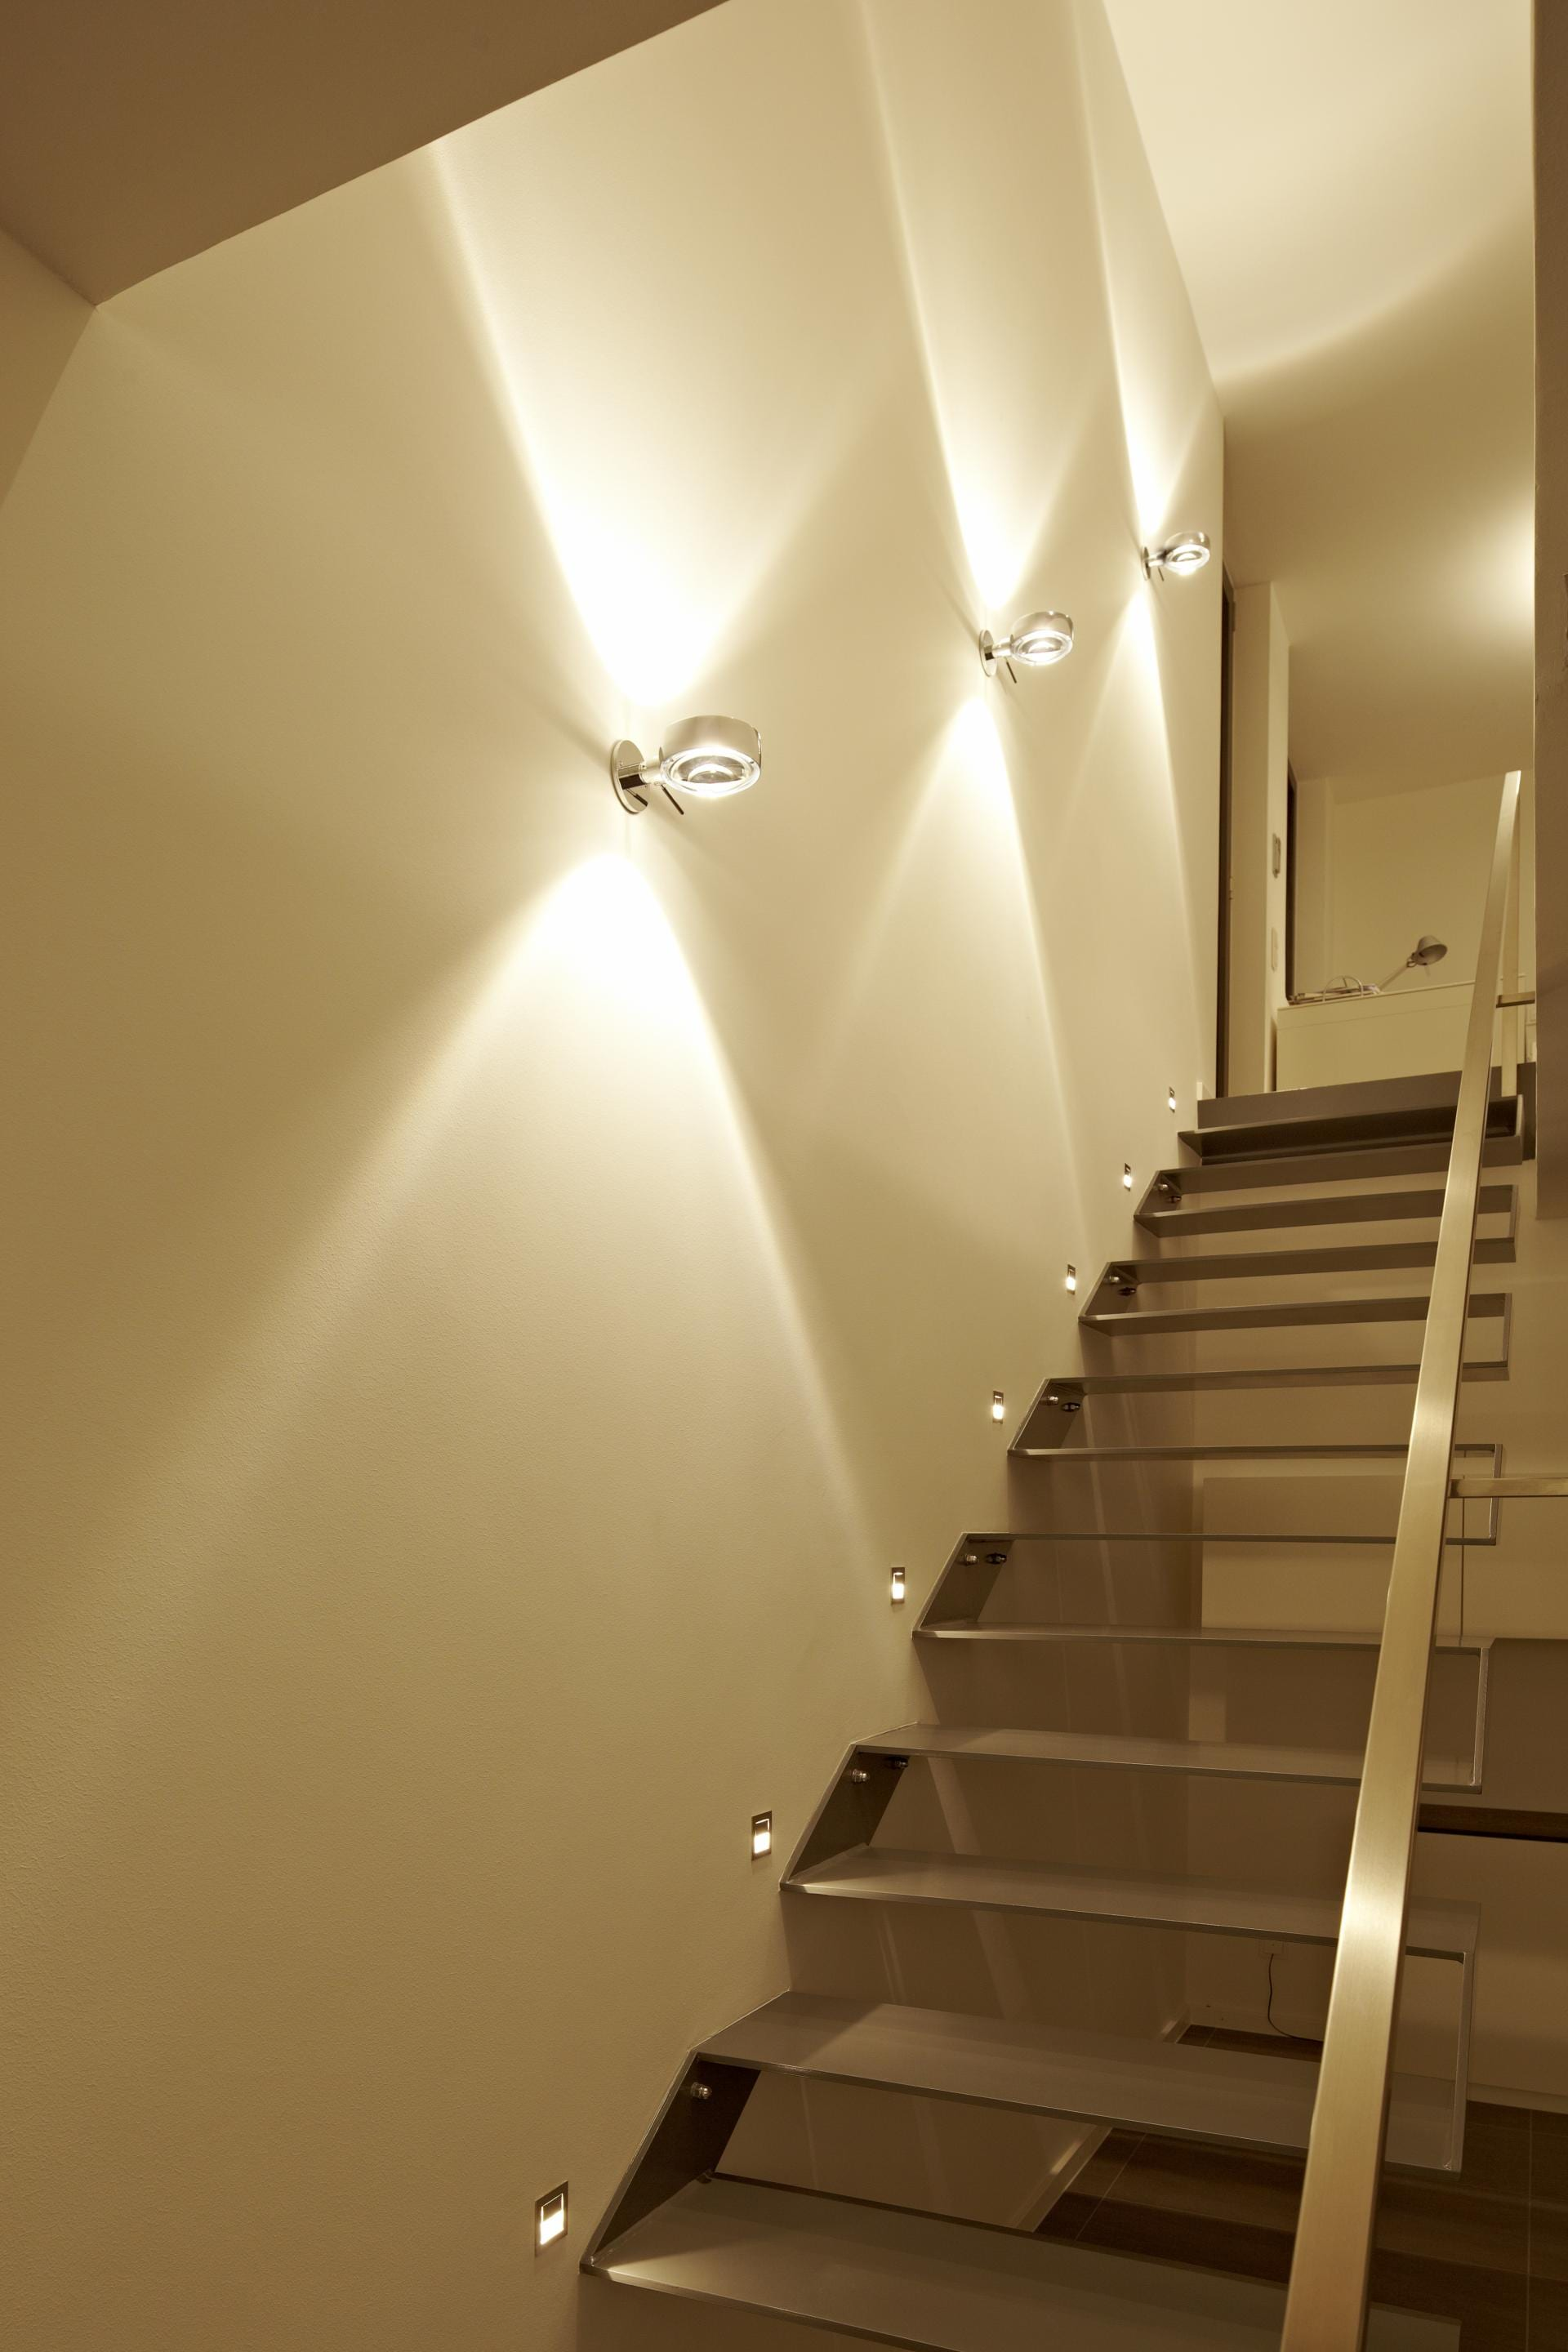 Asco Lights - Staircase Lighting